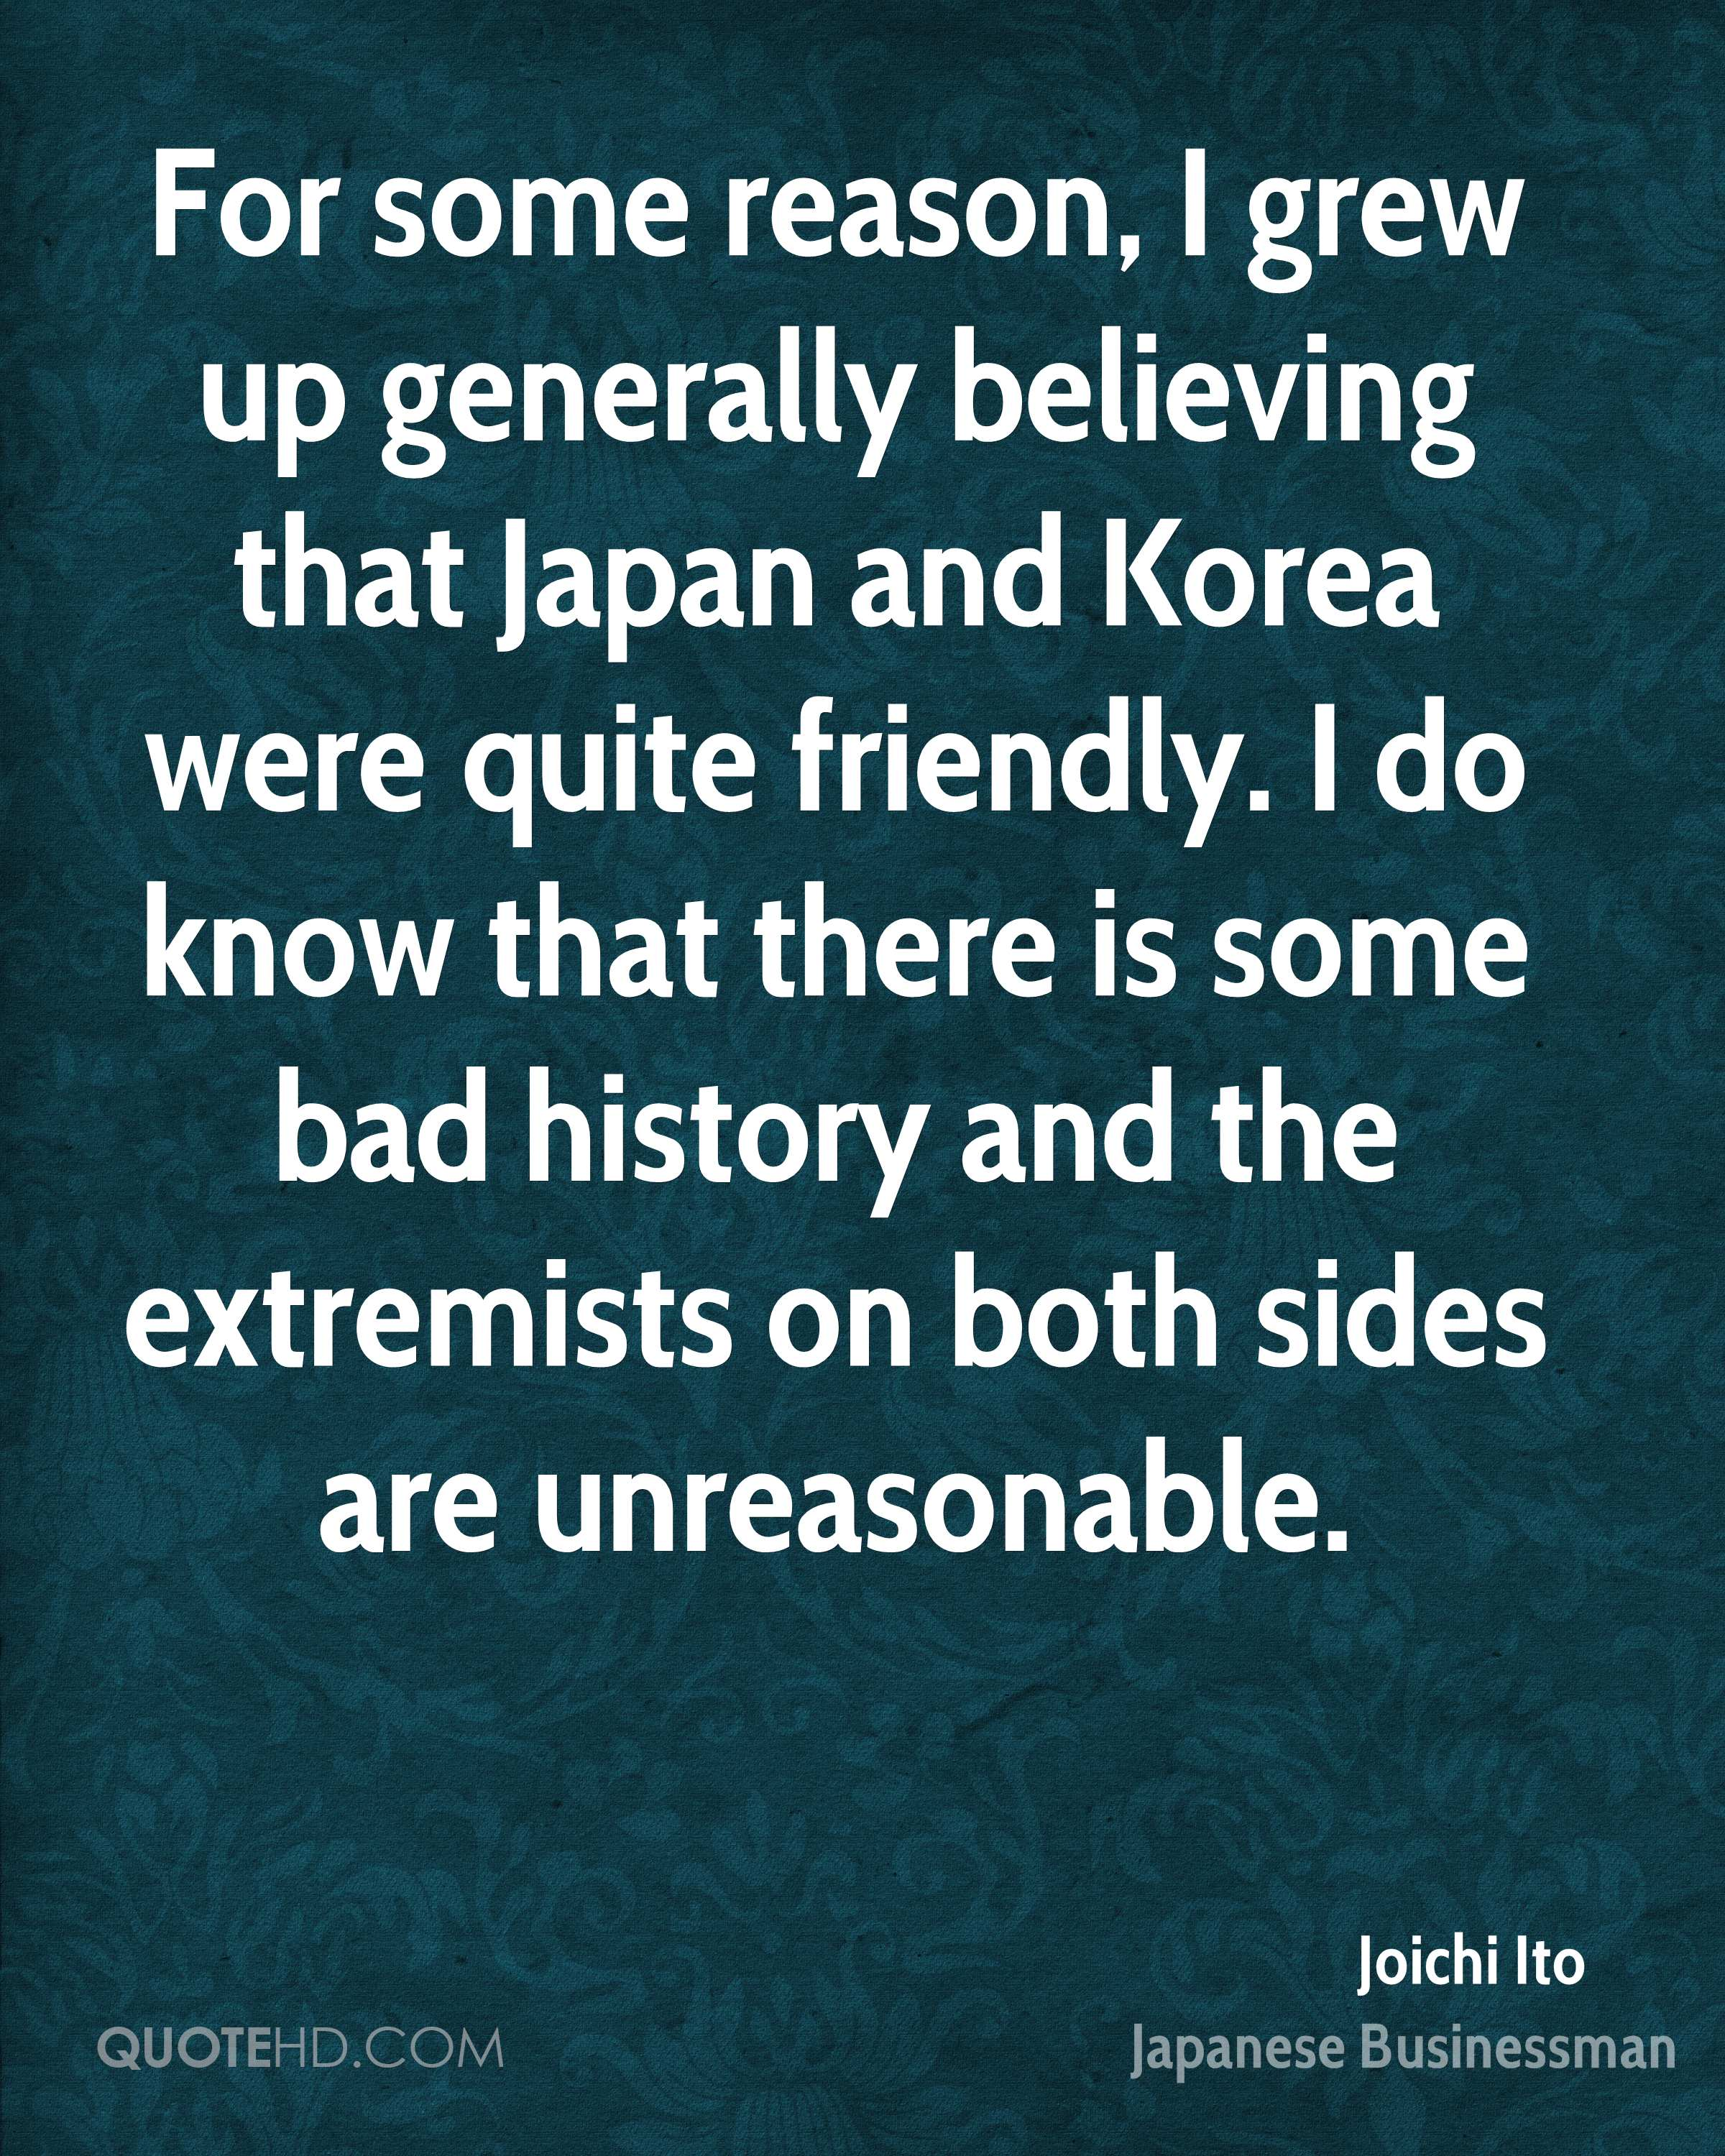 For some reason, I grew up generally believing that Japan and Korea were quite friendly. I do know that there is some bad history and the extremists on both sides are unreasonable.